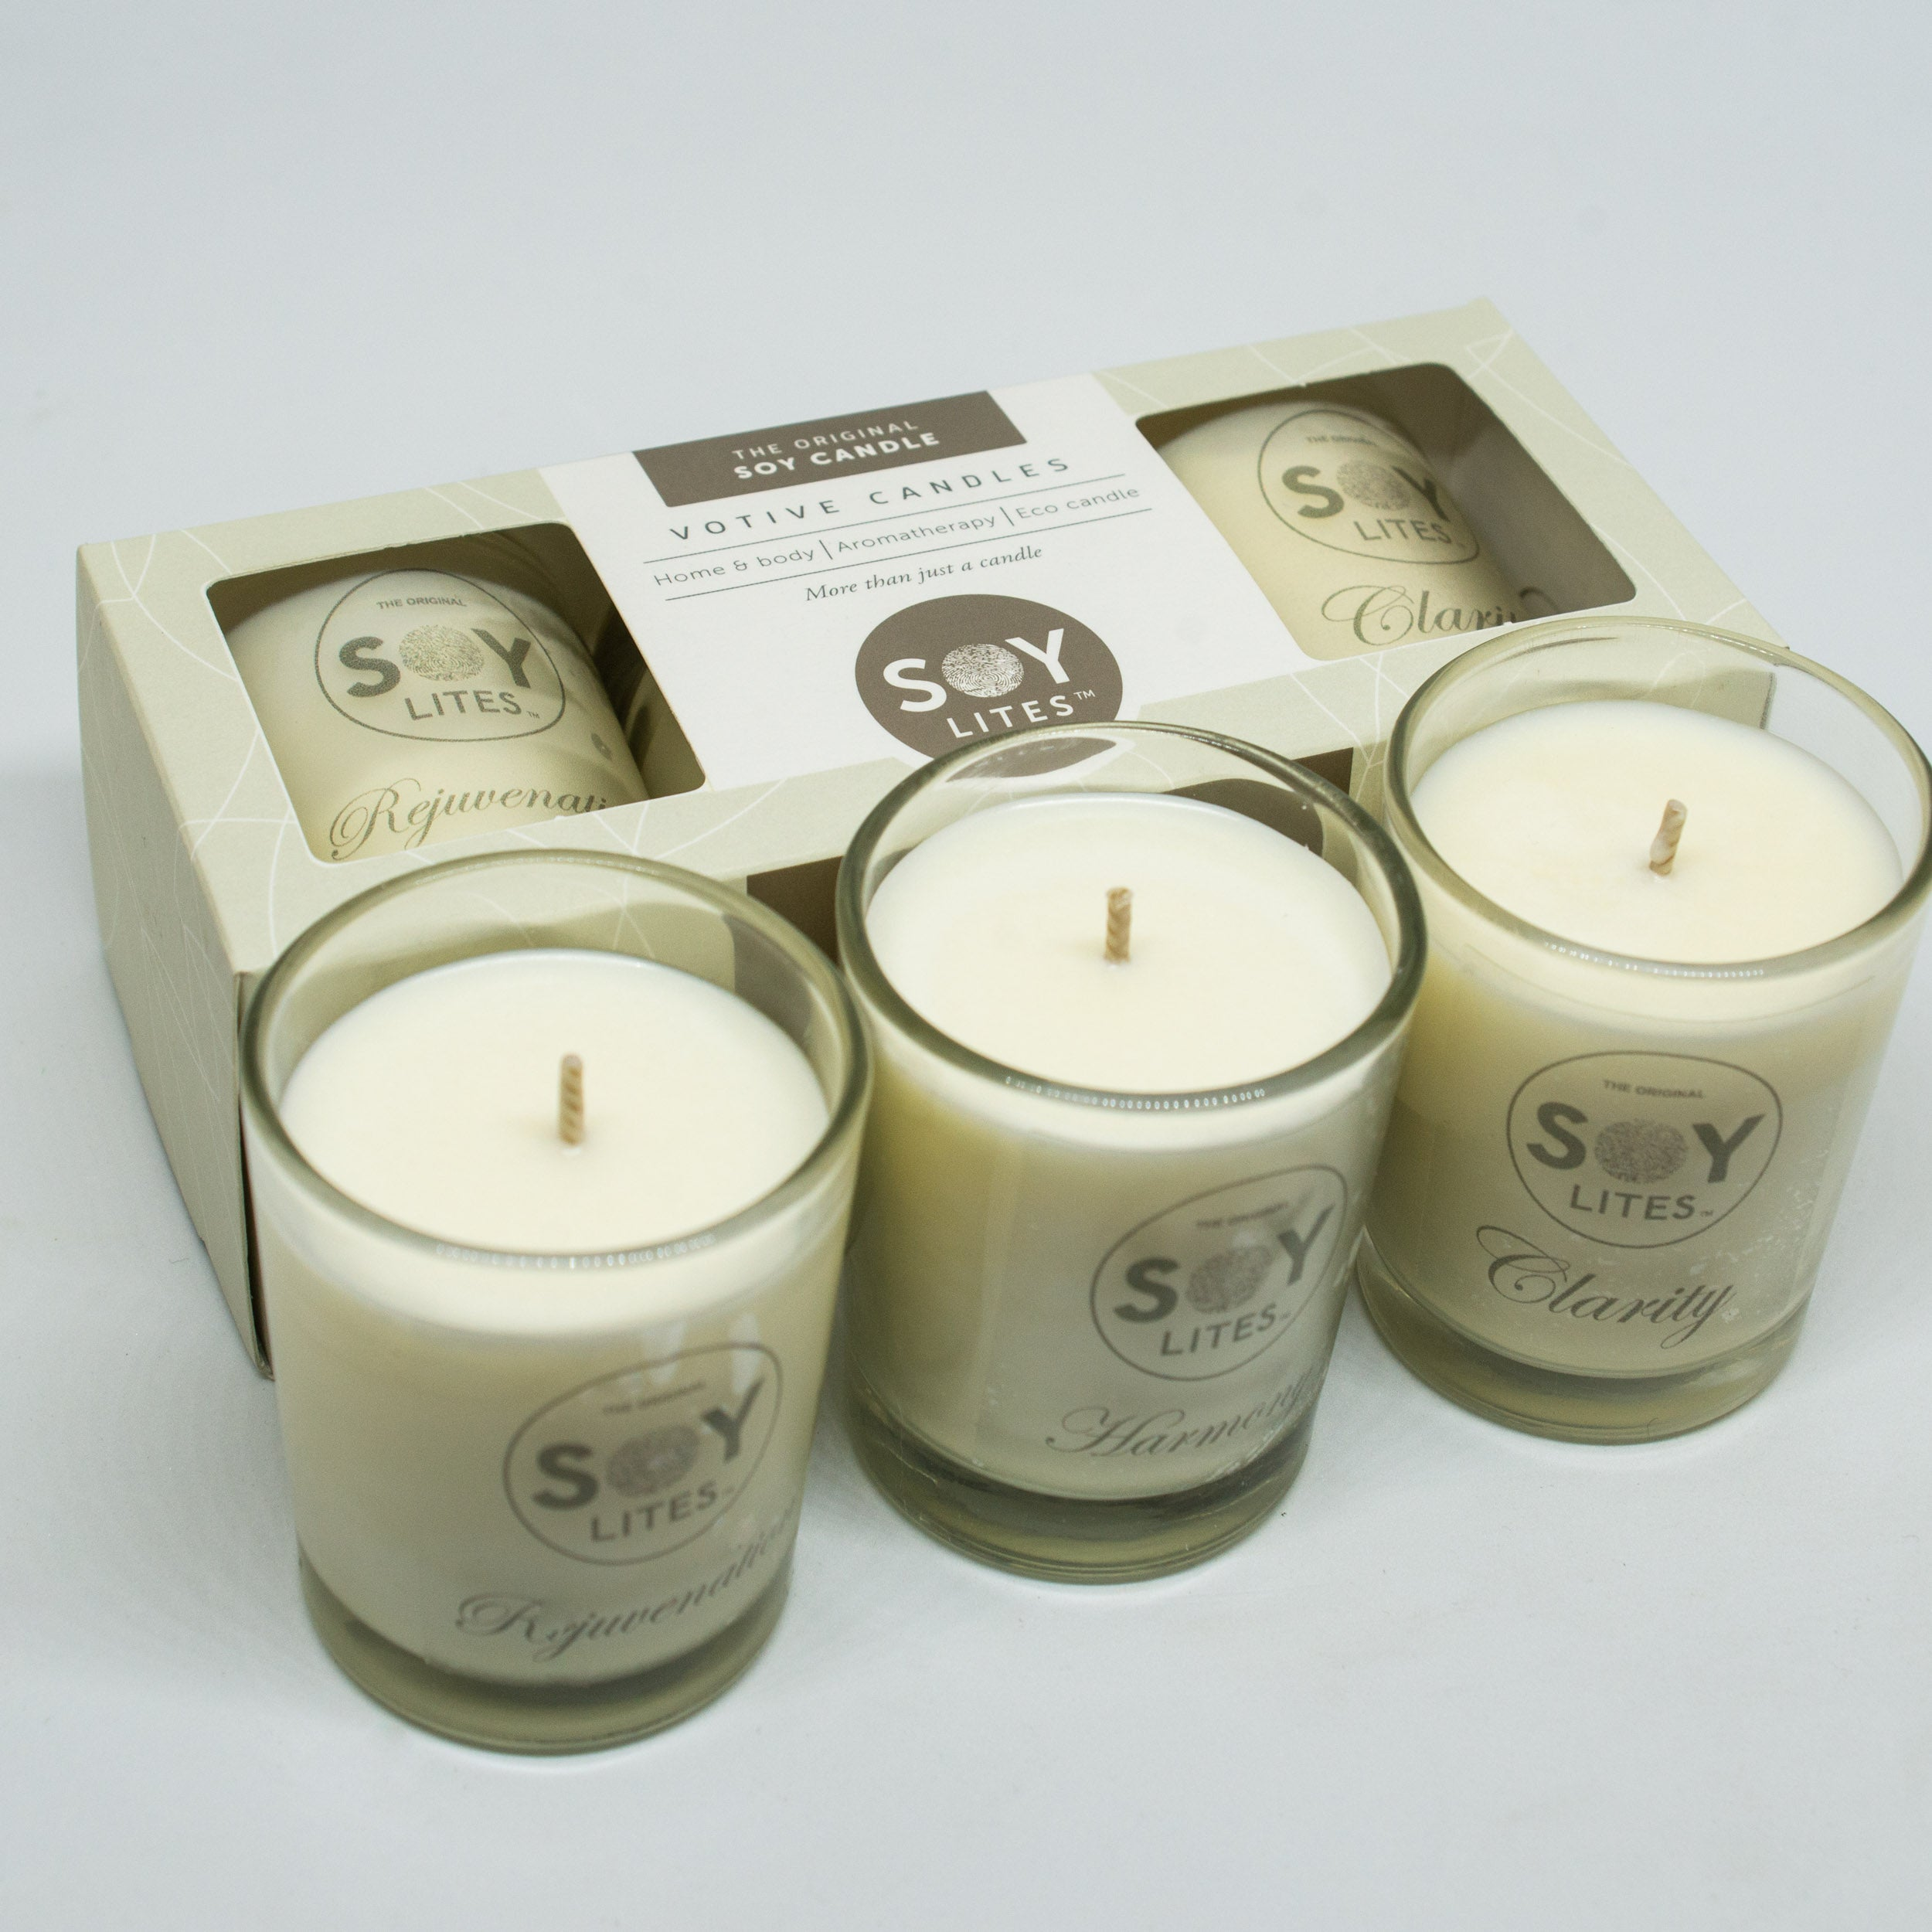 Soy Lites - Classic Votive Gift Pack